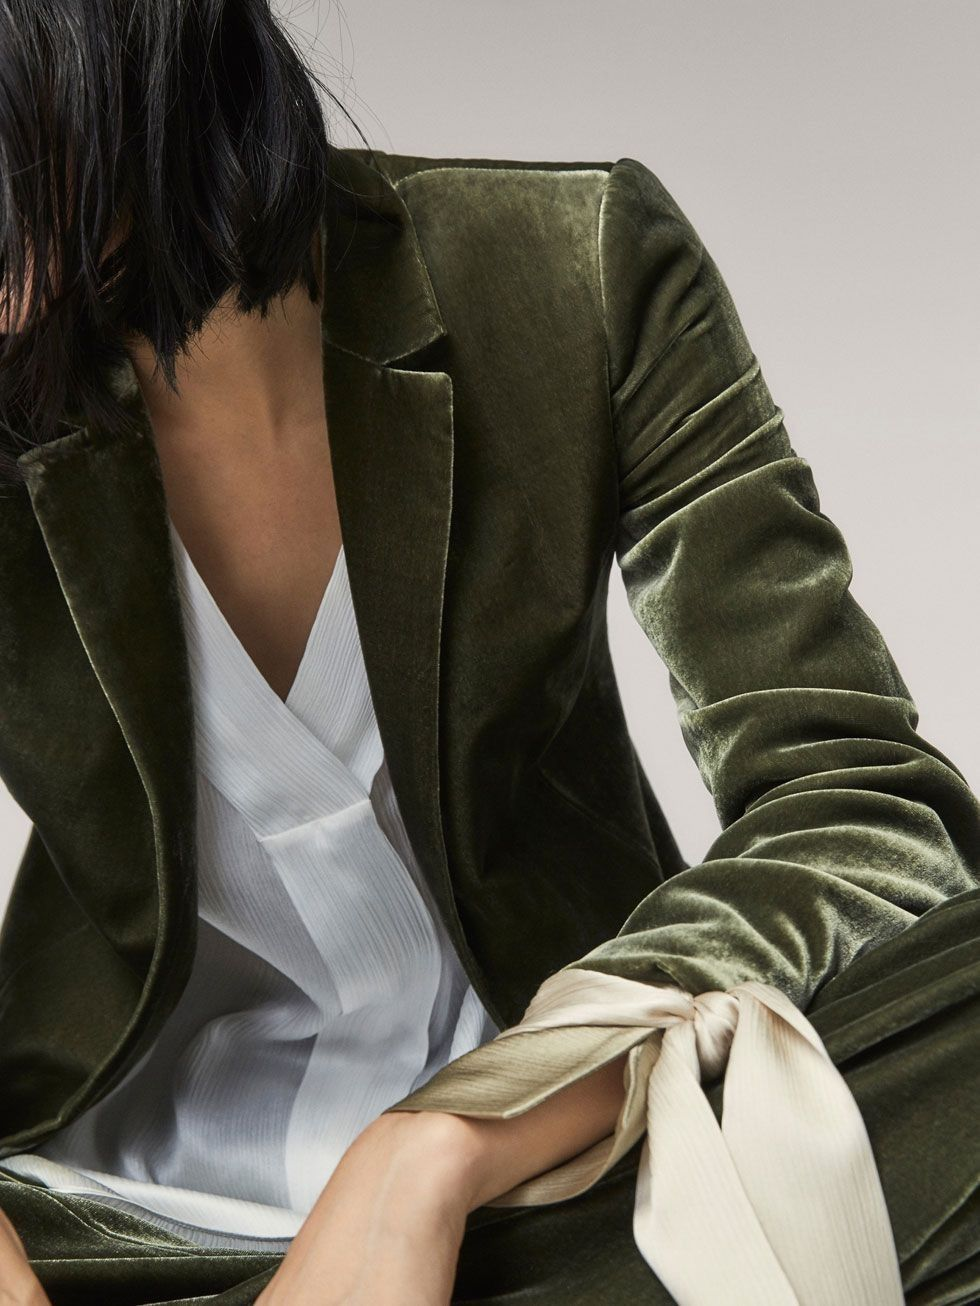 Hello, beautiful blazer! Not only is the cut and color simply stunning, the fact that it is velvet is really awesome. Perfect for a winter work outfit!